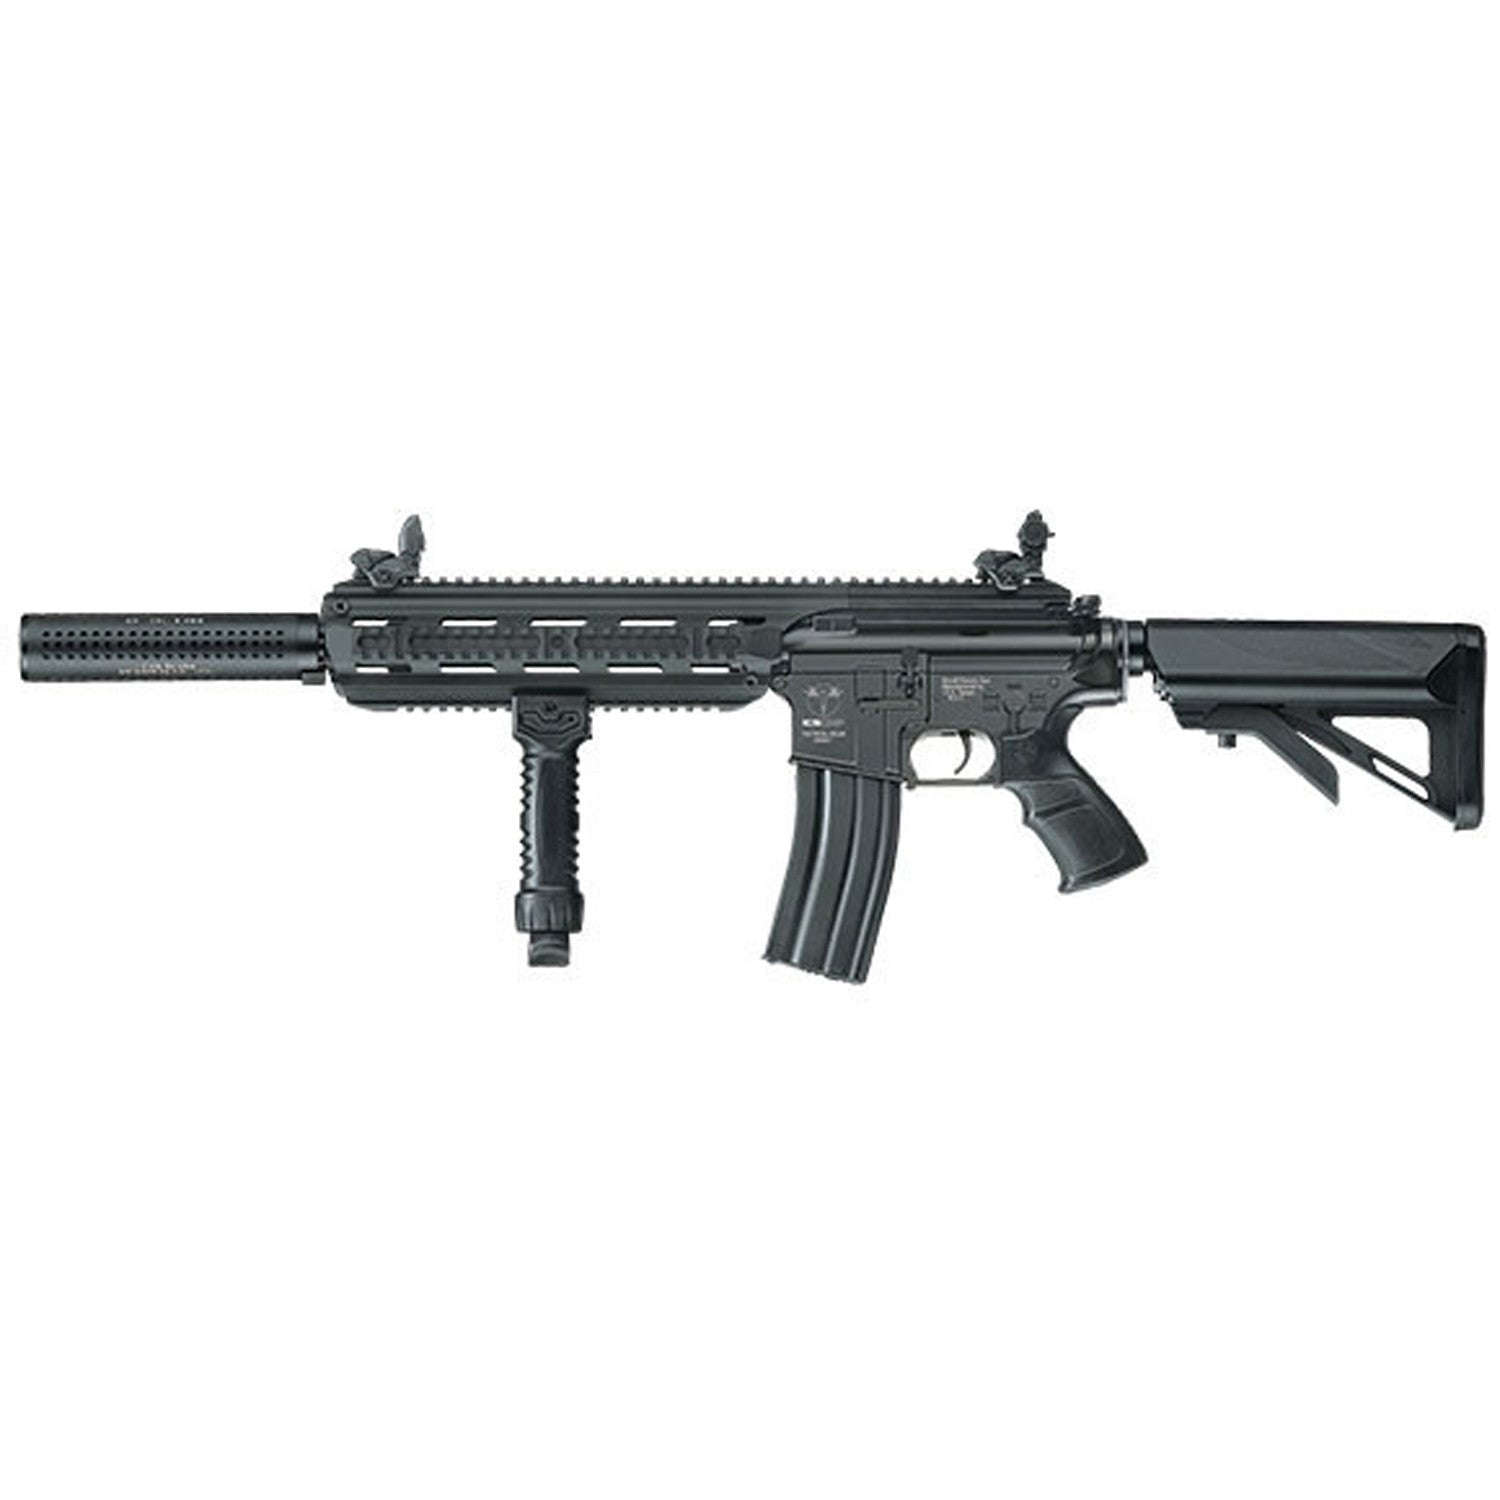 ICS CXP-16 Airsoft AEG ICS-238 (Long Version, Black) - Semi & Fully Auto, ICS CXP Series, Full Metal Receiver, CNC Aluminum 320mm CXP16 Tactical RIS Handguard, Nylon Fiber 6 Position Retractable Crane Stock, Non Slip texture Pistol Grip